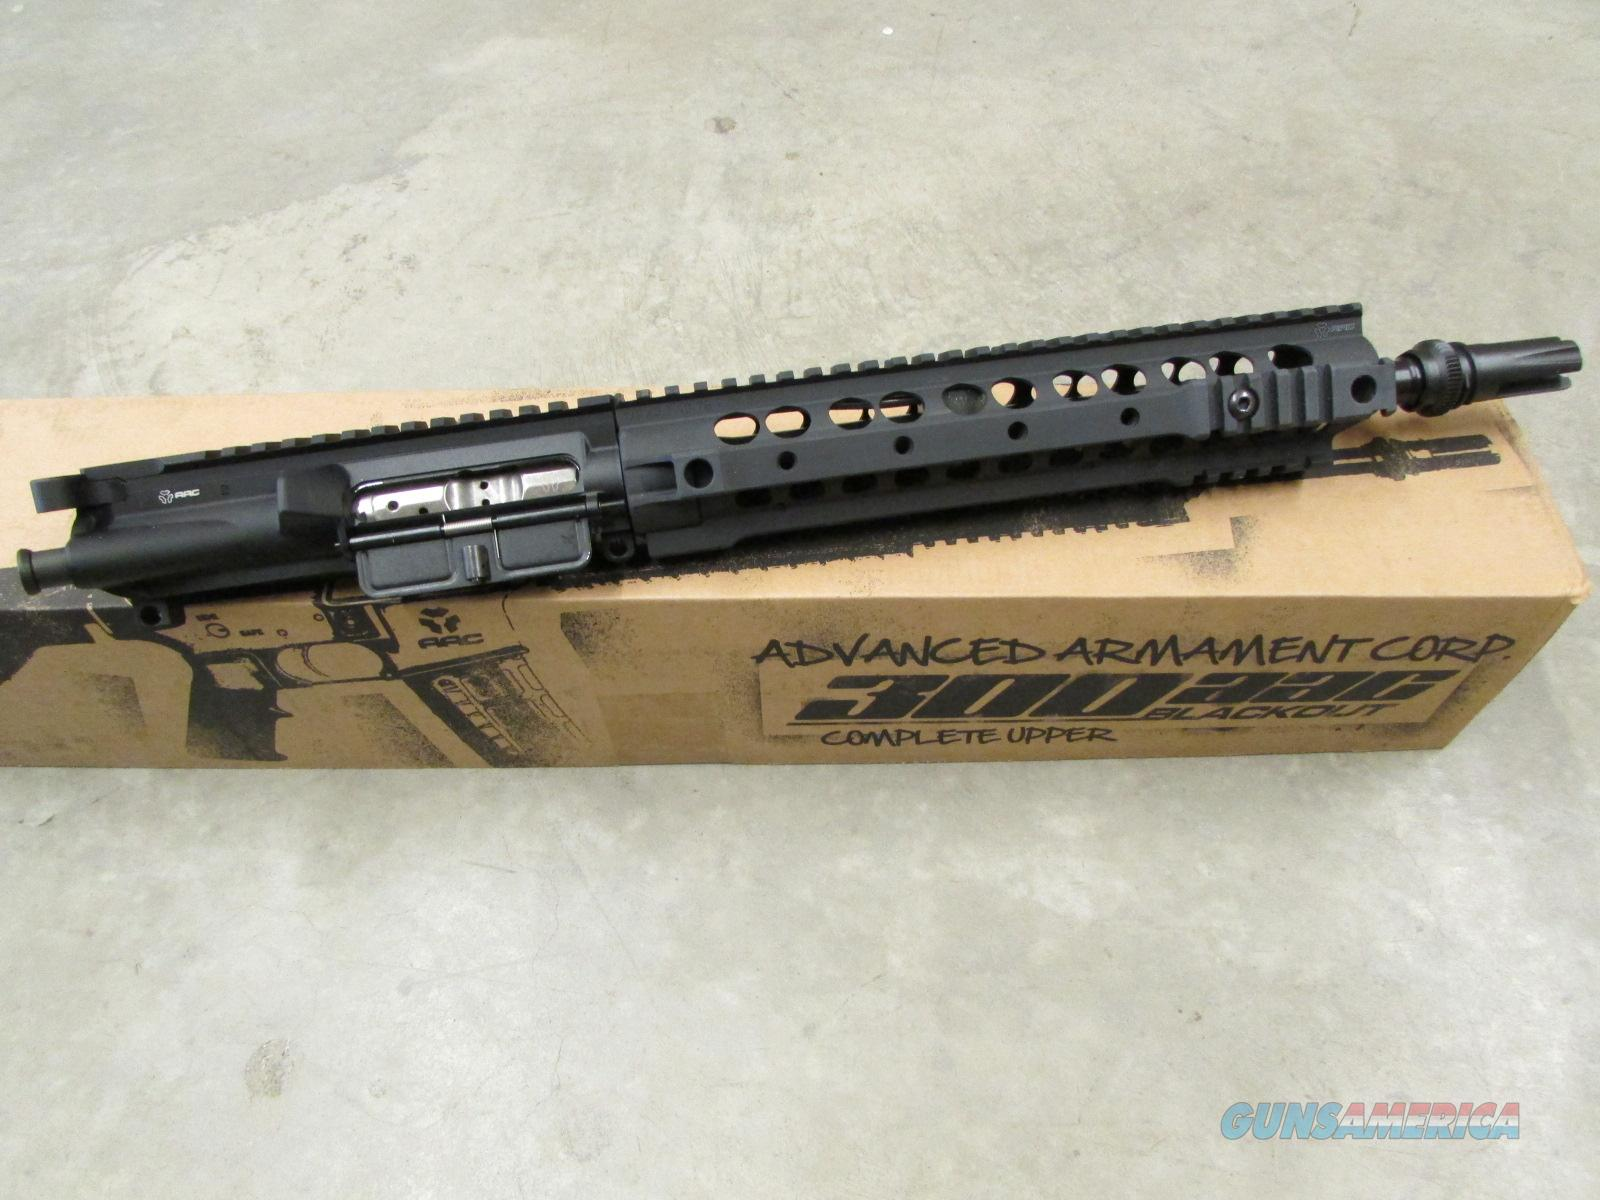 "AAC AR-15 A3 12.5"" Barrel Upper 300 AAC Blackout   Non-Guns > Gun Parts > M16-AR15 > Upper Only"